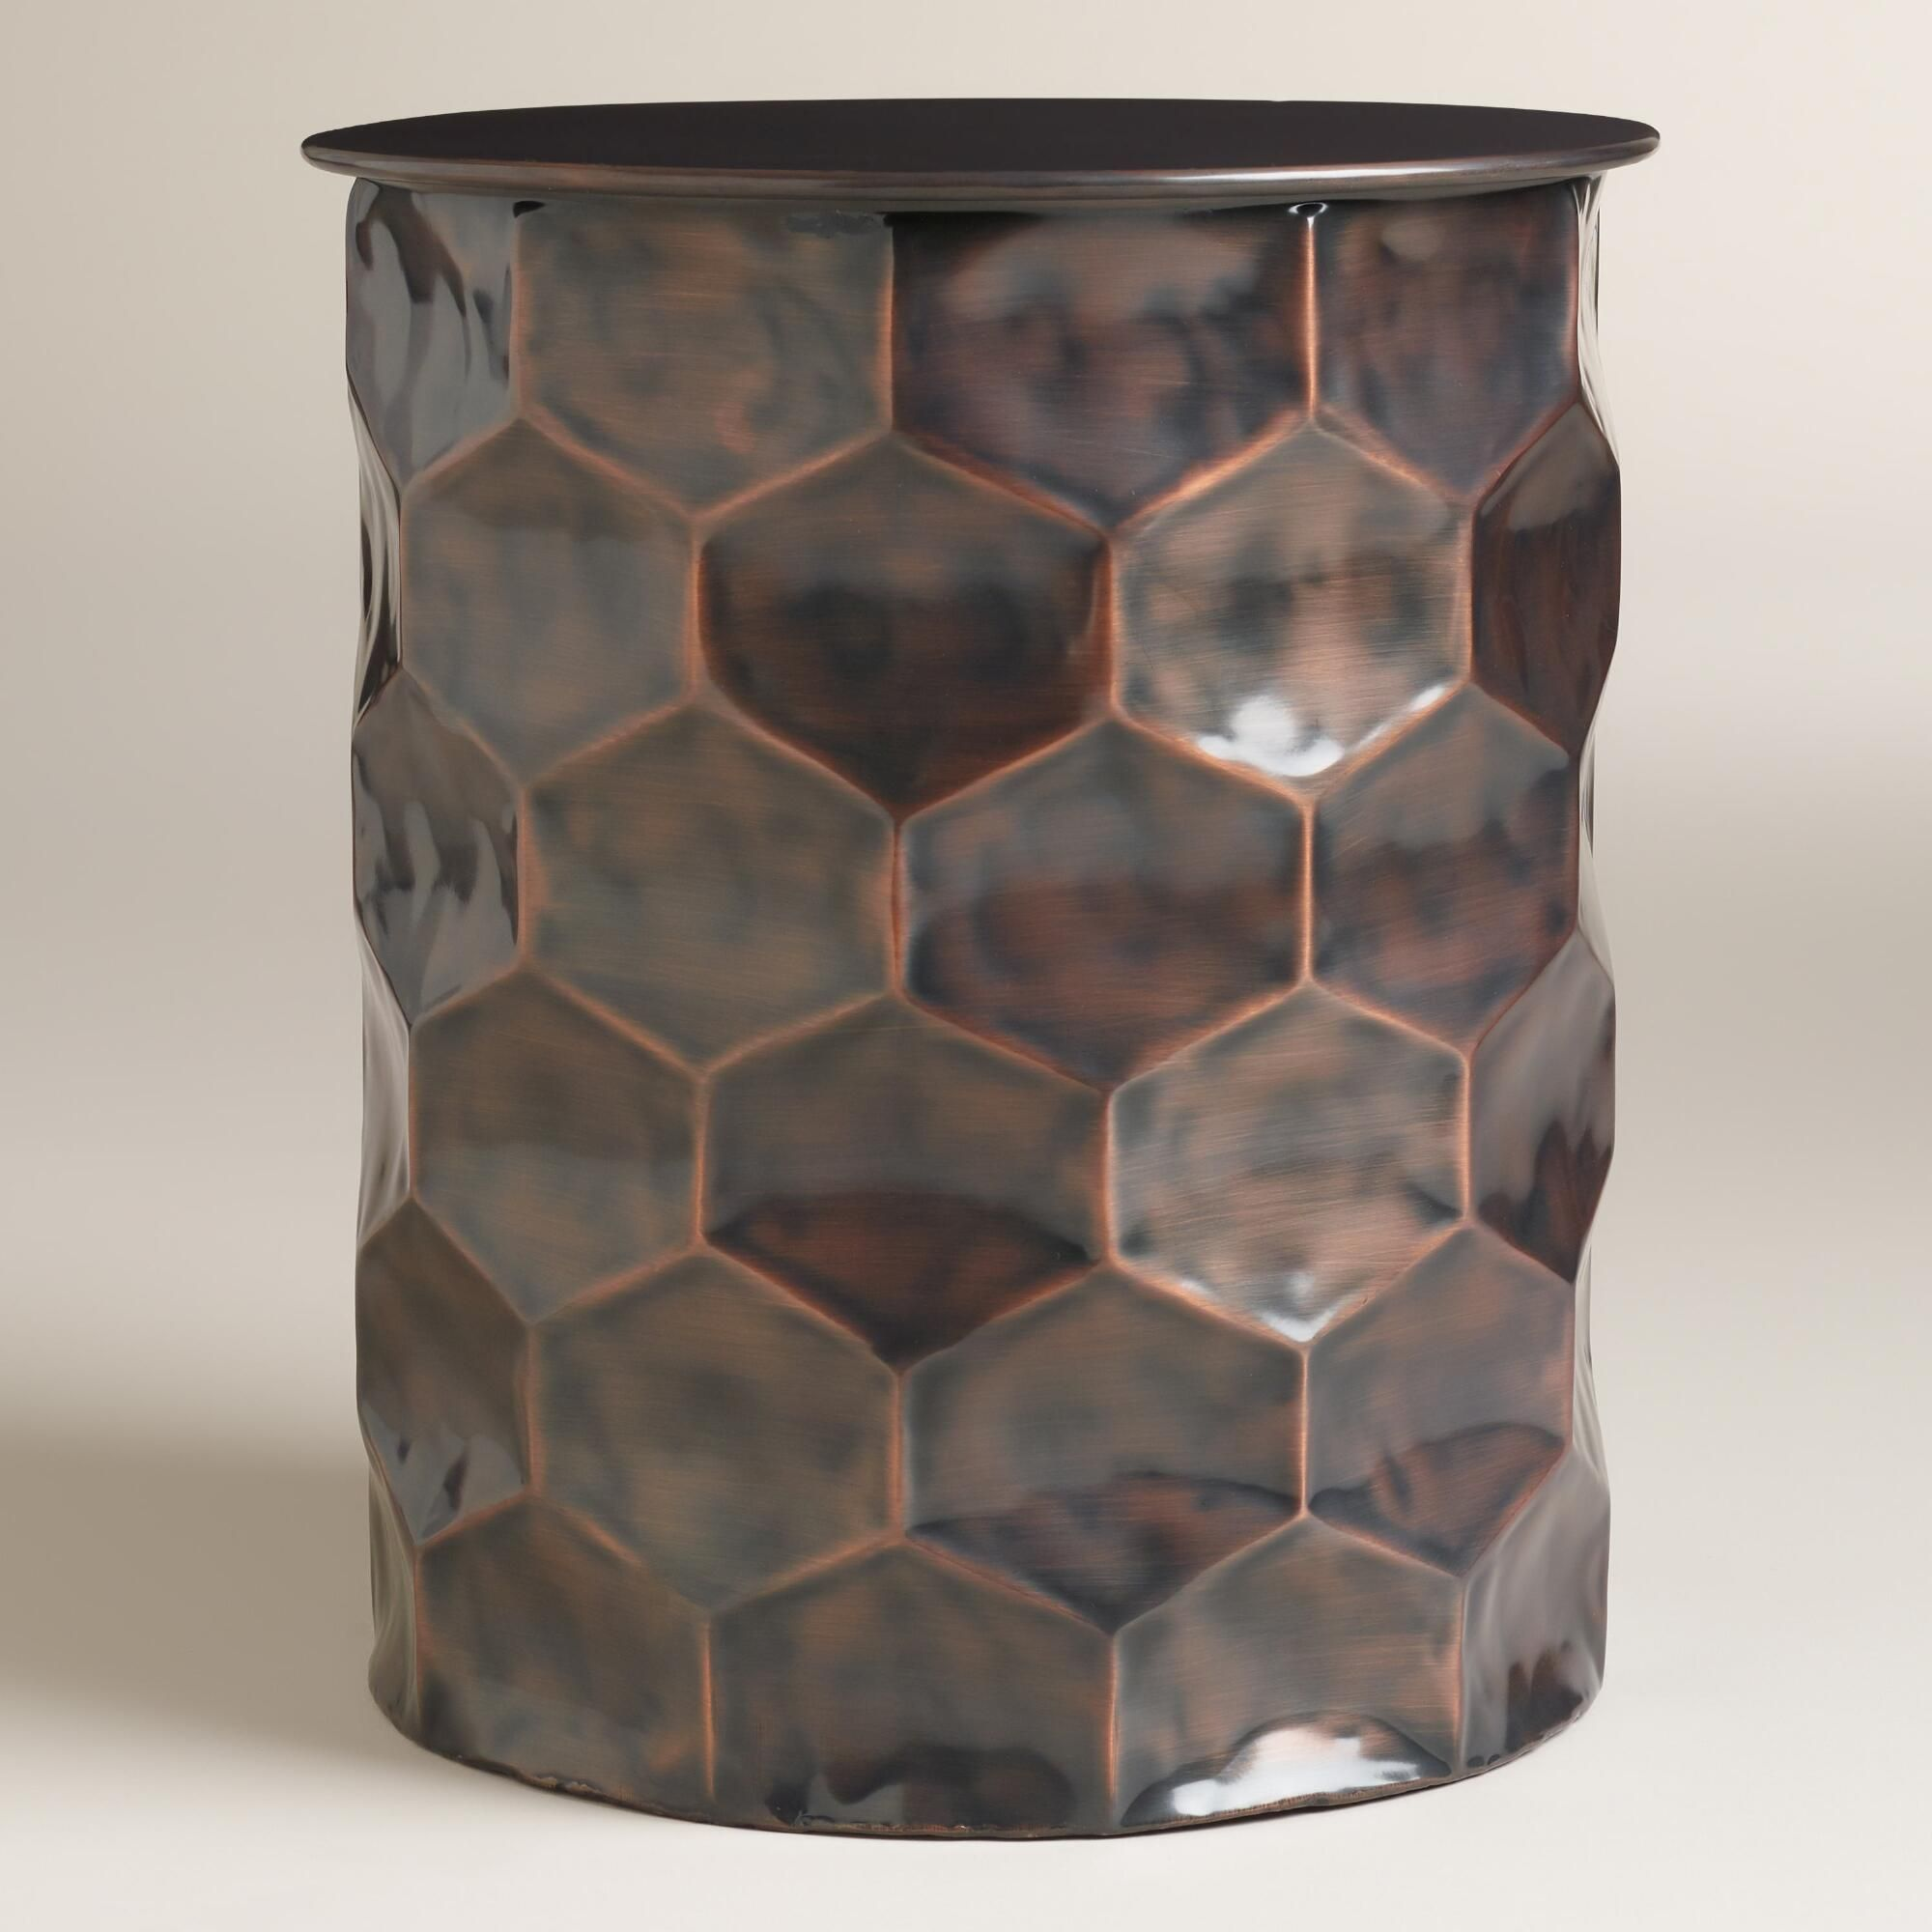 Metal Rani Drum Accent Table Drum table Drums and Honeycombs